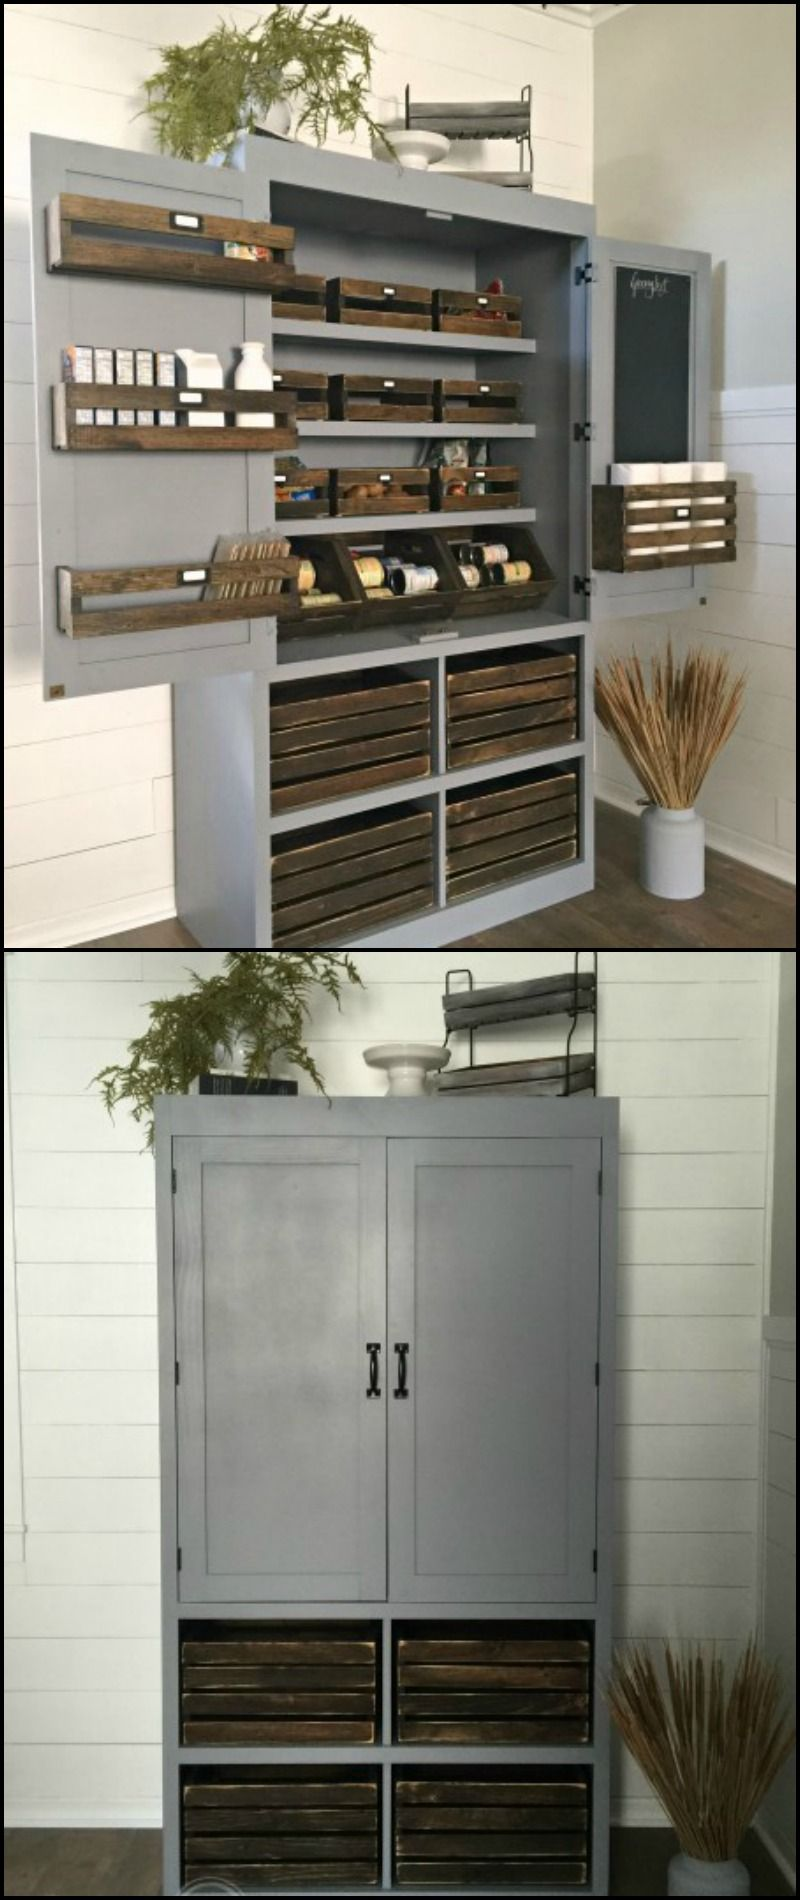 Kitchen Freestanding Pantry Coffee Color Cabinets Build A Diy For All Pinterest If You Need Just Small Your Then Here S Project As Long Have Enough Space Cabinet Can